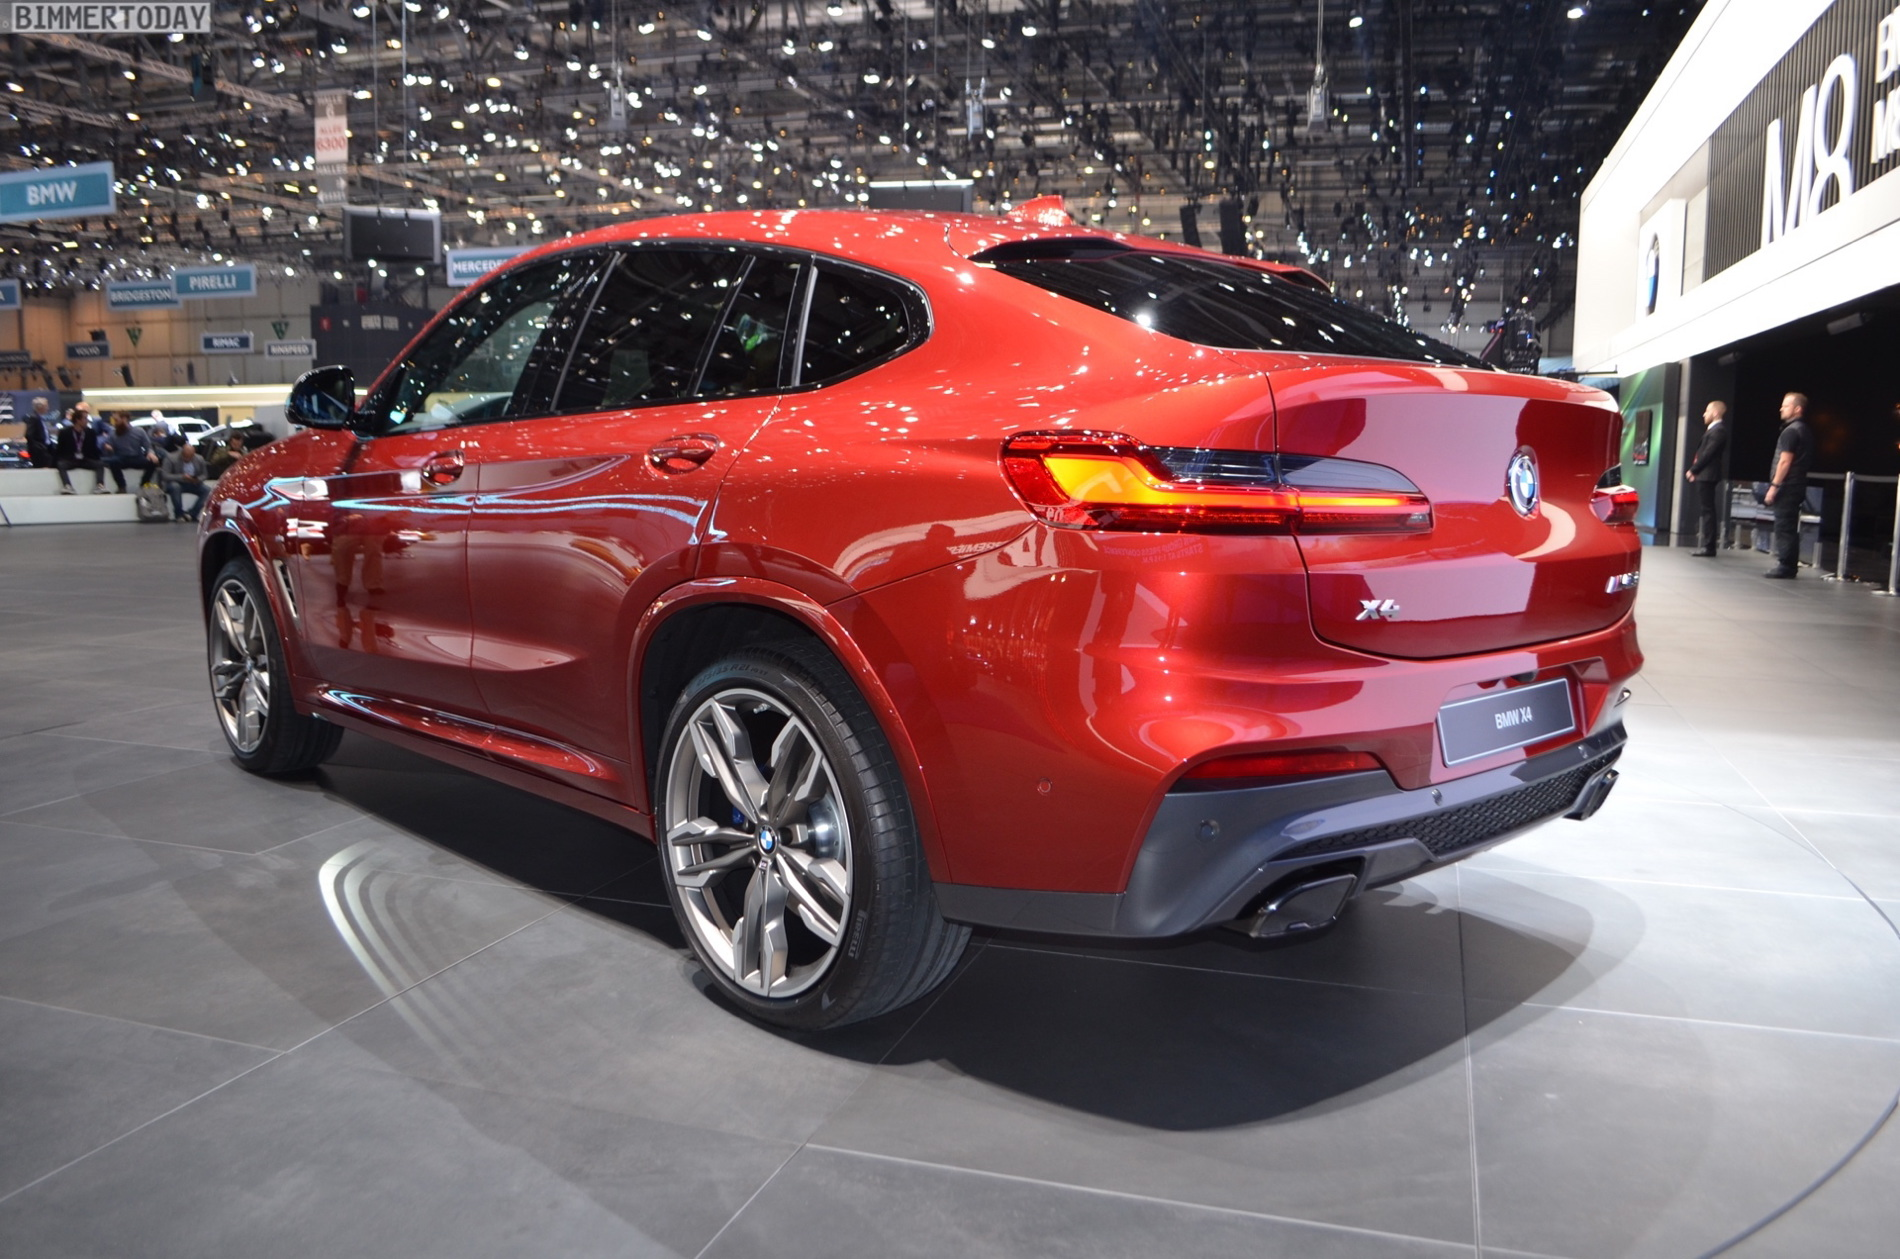 Bmw Xdrive System Review >> 2018 Geneva Motor Show: New BMW X4 in Flamenco Red